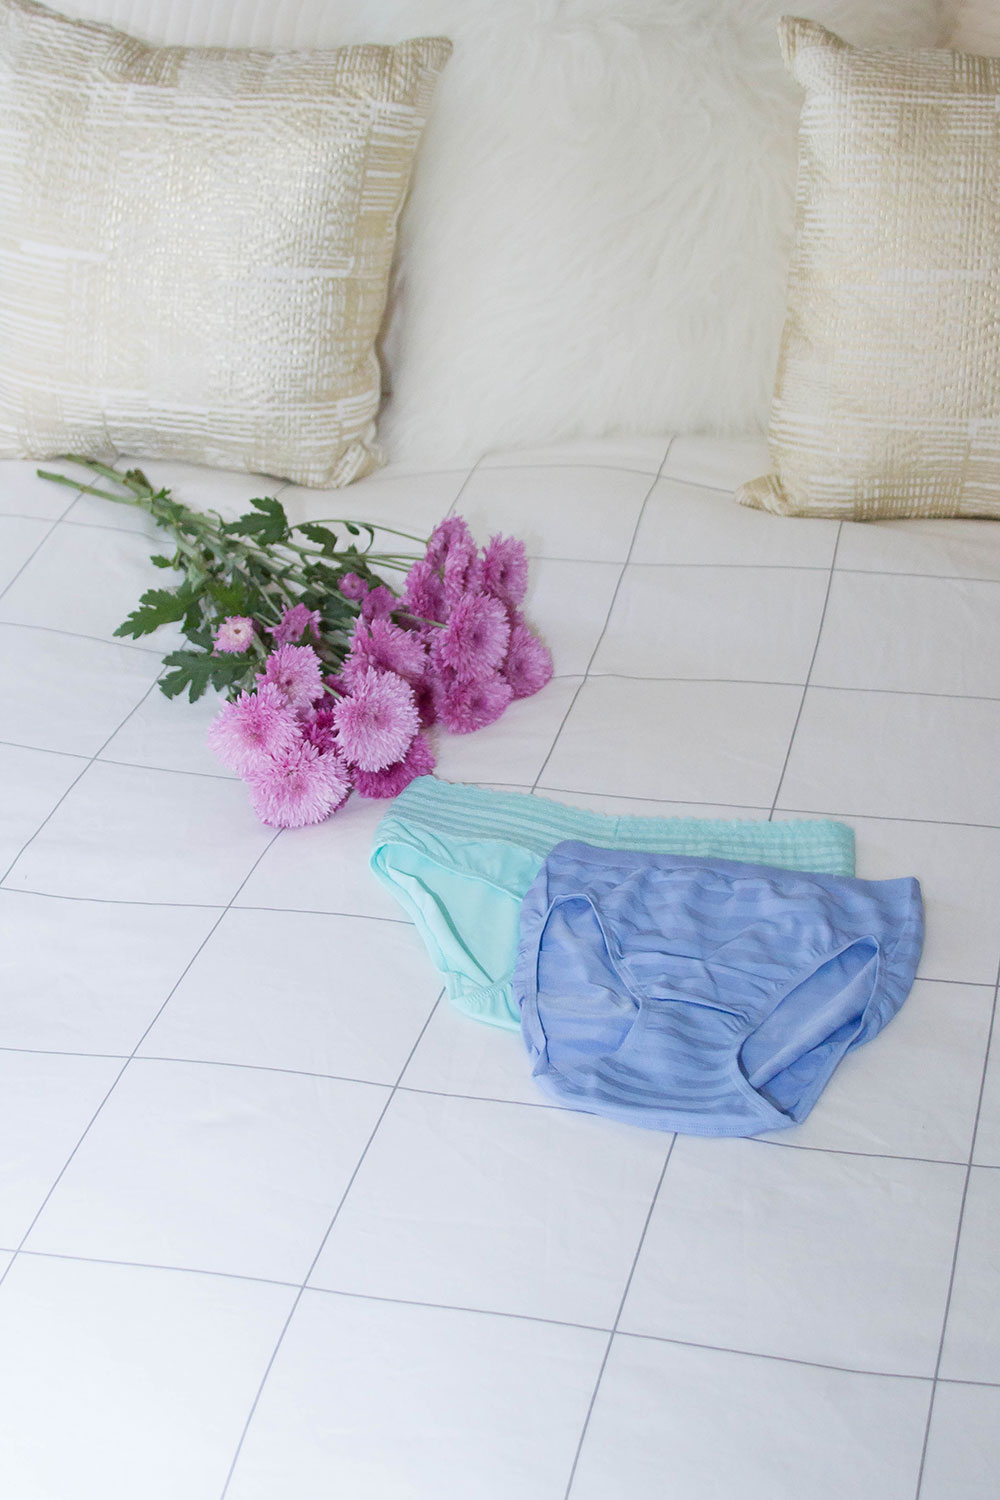 Choosing The Best Underwear For Women by Austin fashion blogger Life By Lee